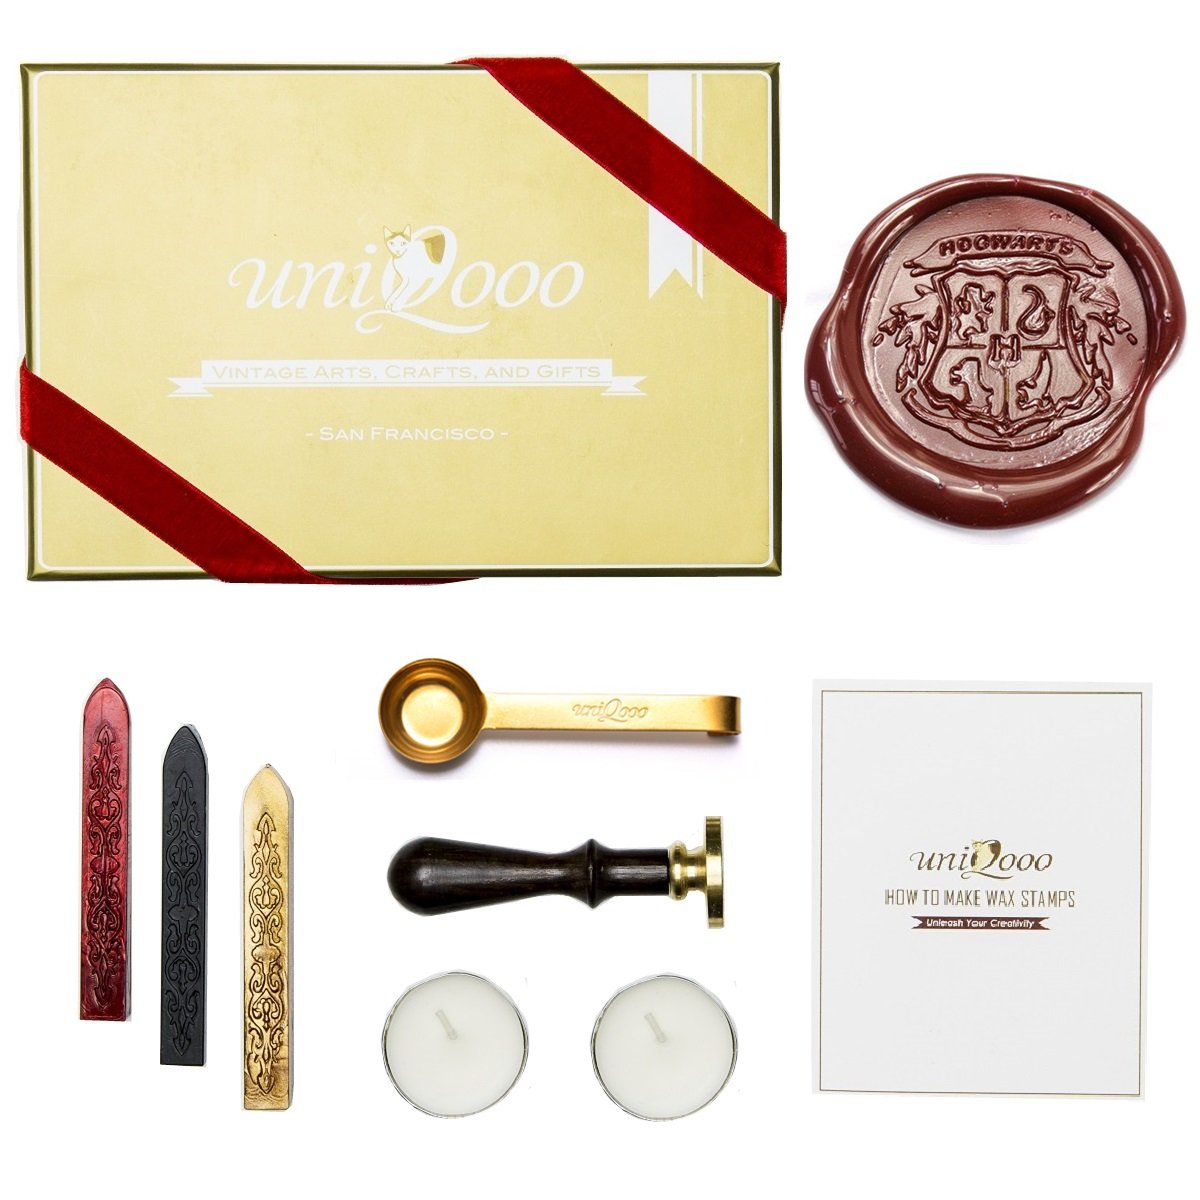 UNIQOOO Arts & Crafts Vintage Adhesive Sealing Wax Stamp Kit- Hogwarts Ministry of Magic Badge and 4 House Badges- Gold, Red, and Black Wax Sticks with Wicks- Great Gift for a Friend of Relative JIUFAN 4336845757